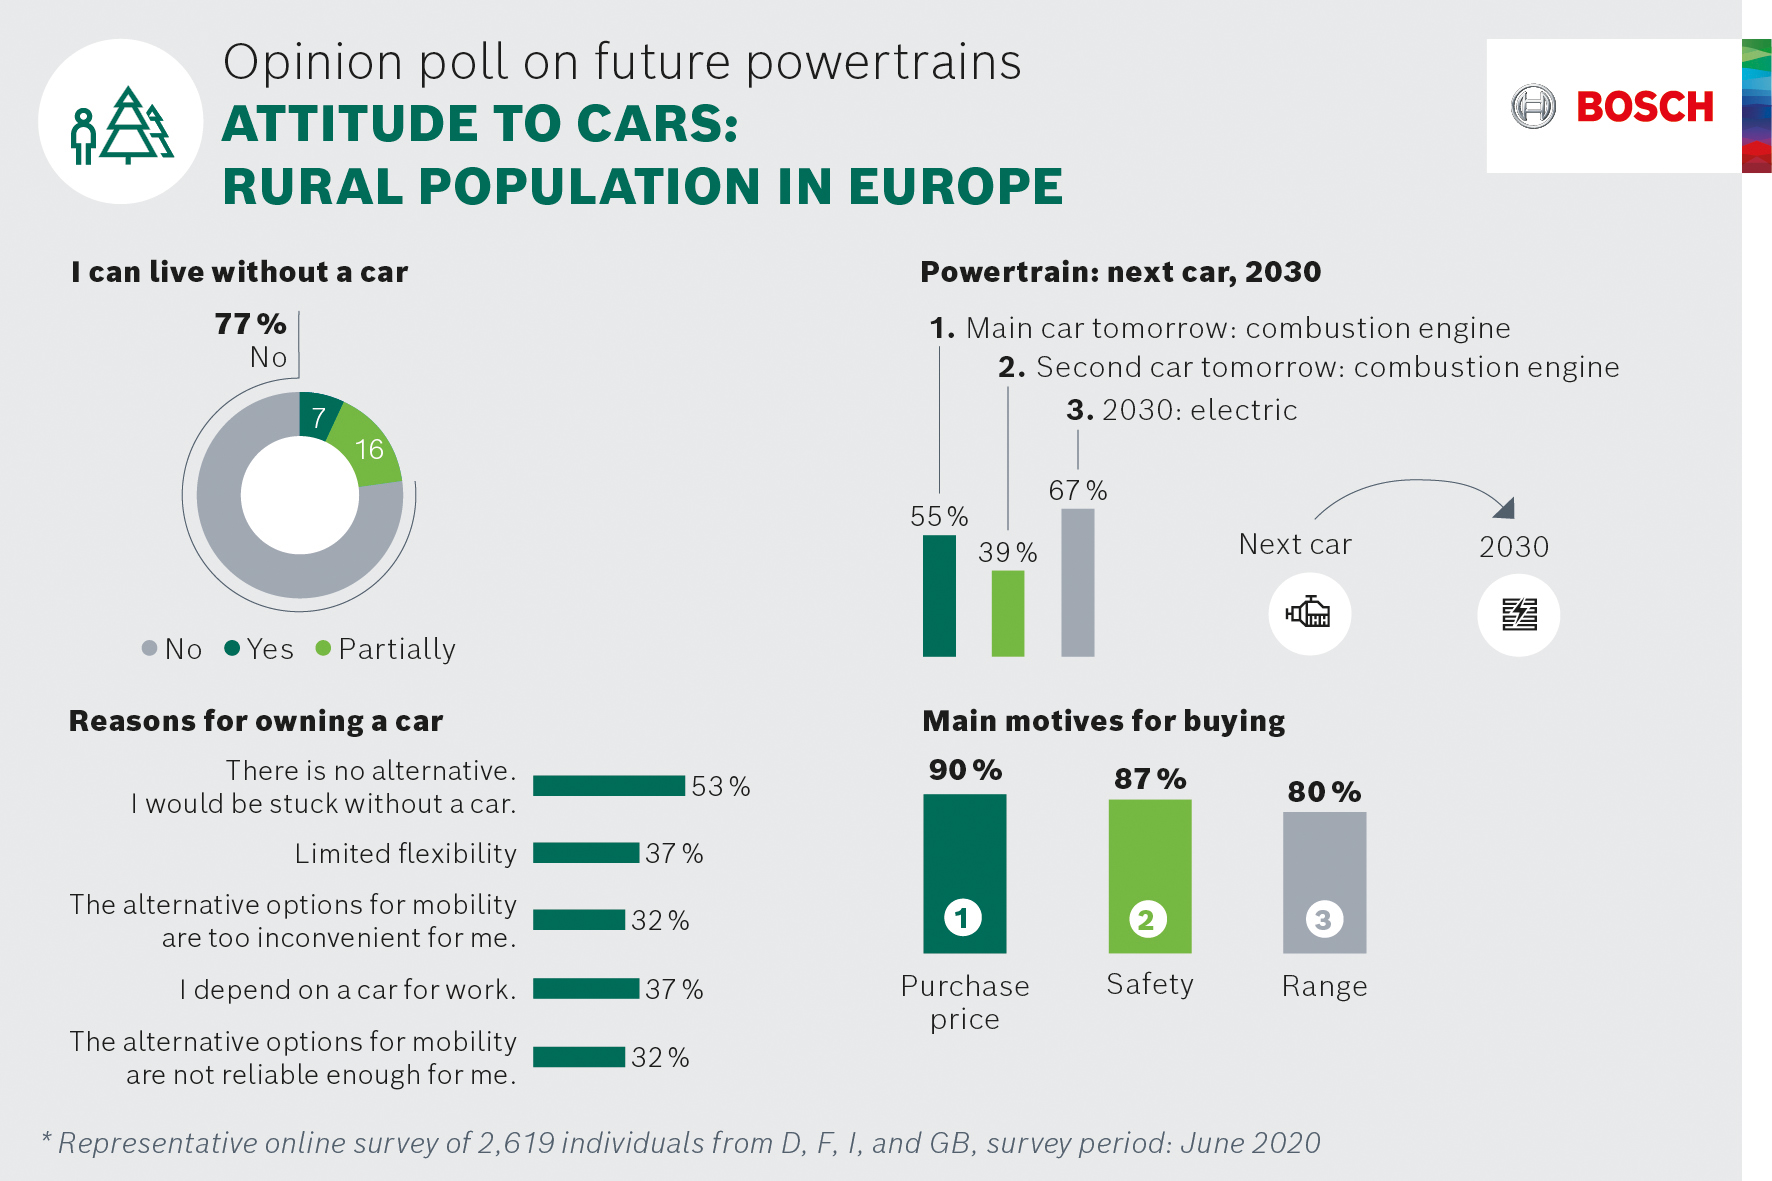 Opinion poll on future powertrains